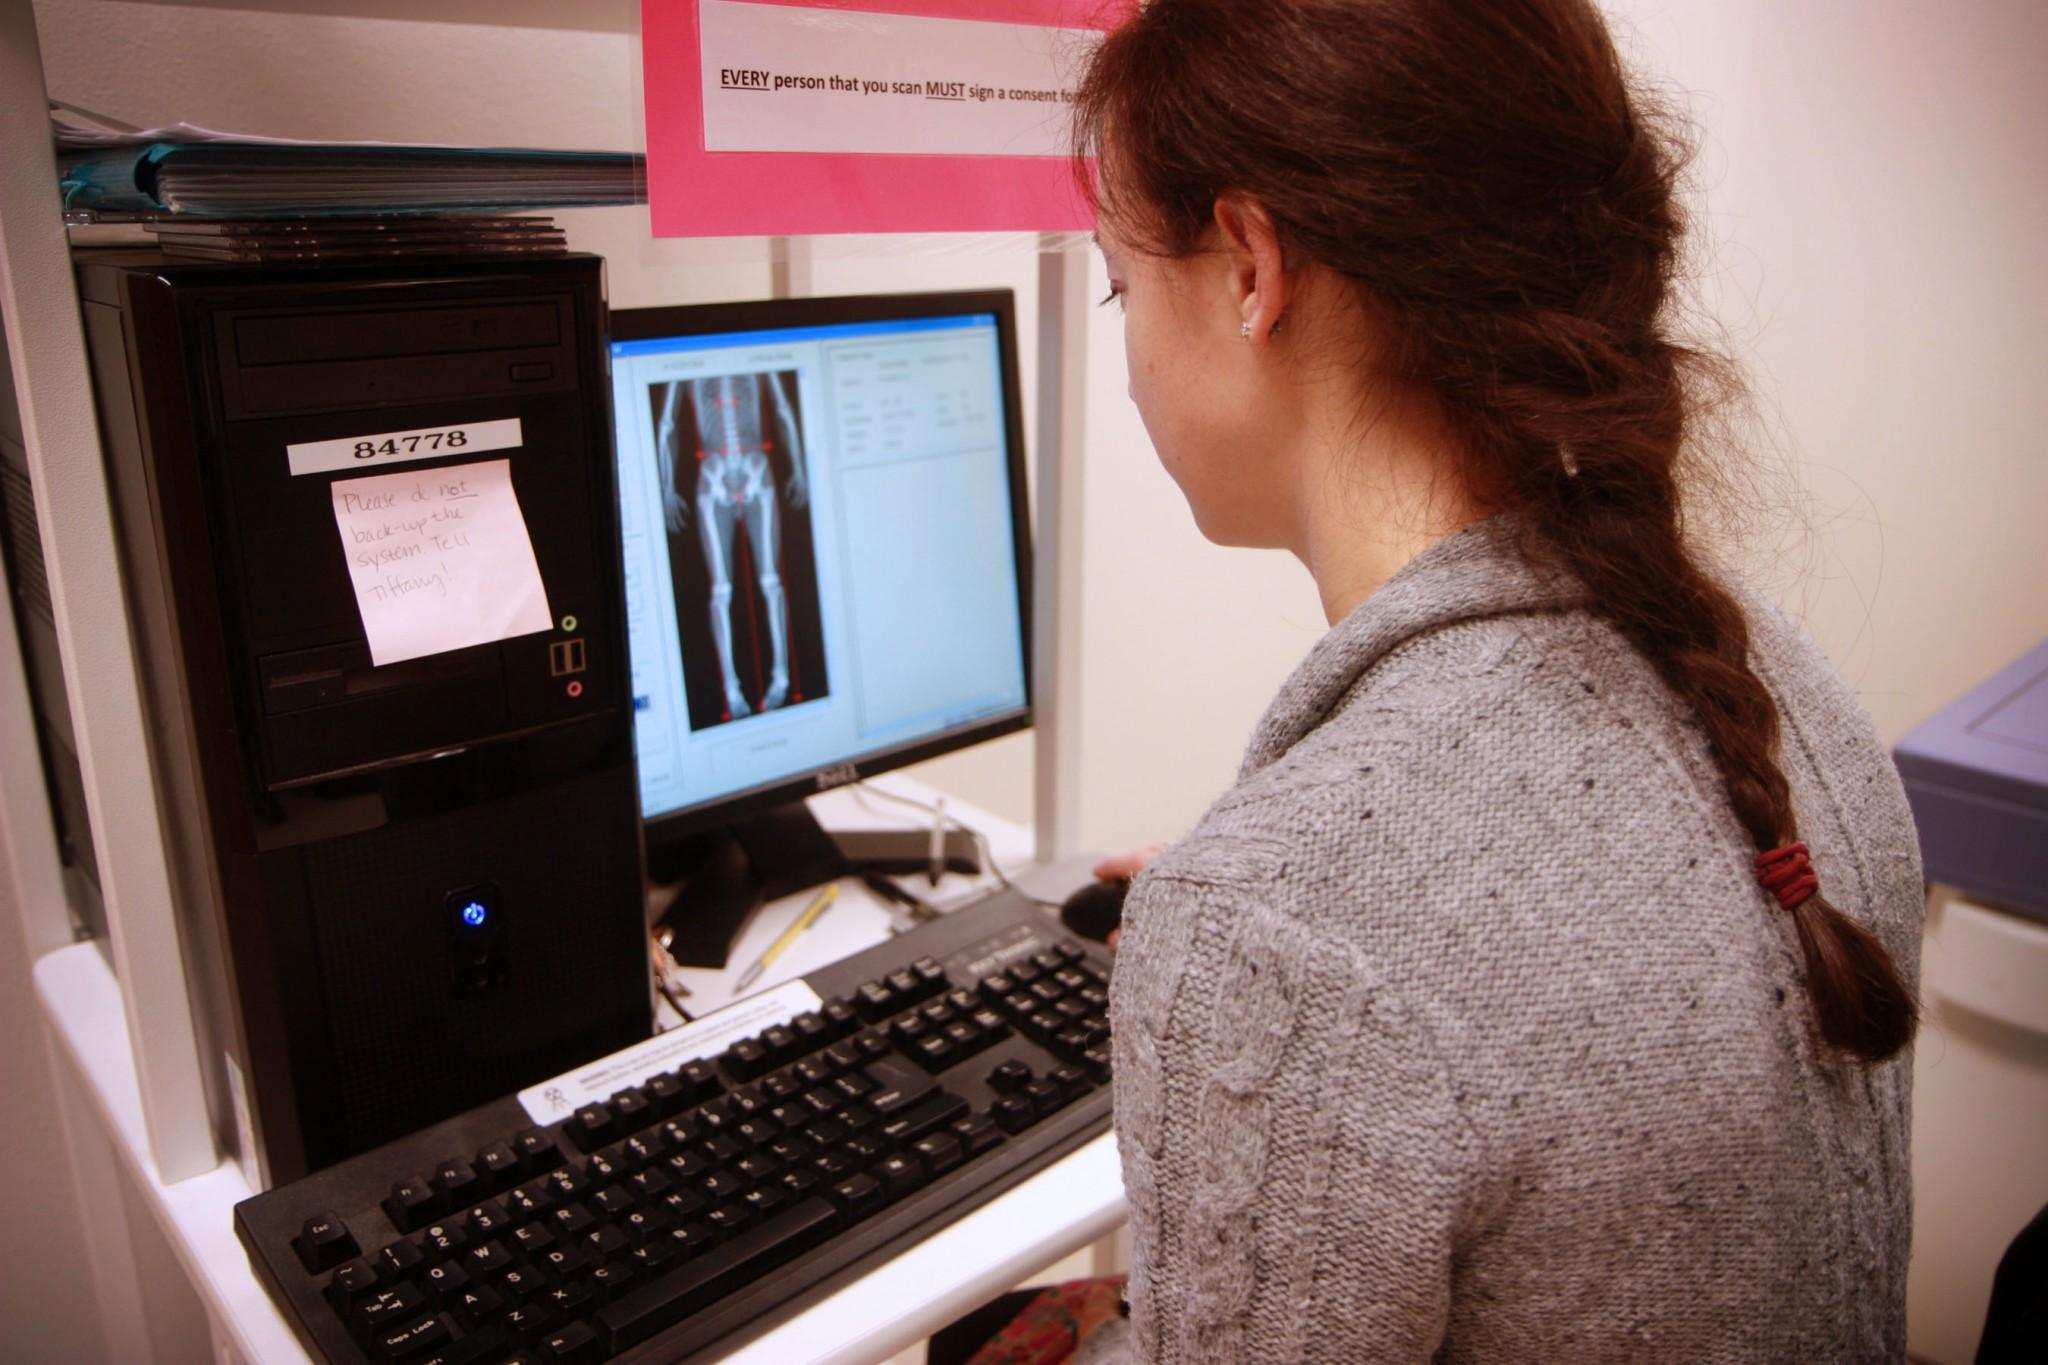 Biomedical Anthropology Graduate student, Amyee Fenwick, conducts a DEXA scan on local climbers to measure bone density as part of her masters thesis research. The DEXA scan is one of many impressive technologies avaliable to students and faculty located in the Human Performance Clinical Research Laboratory on campus.